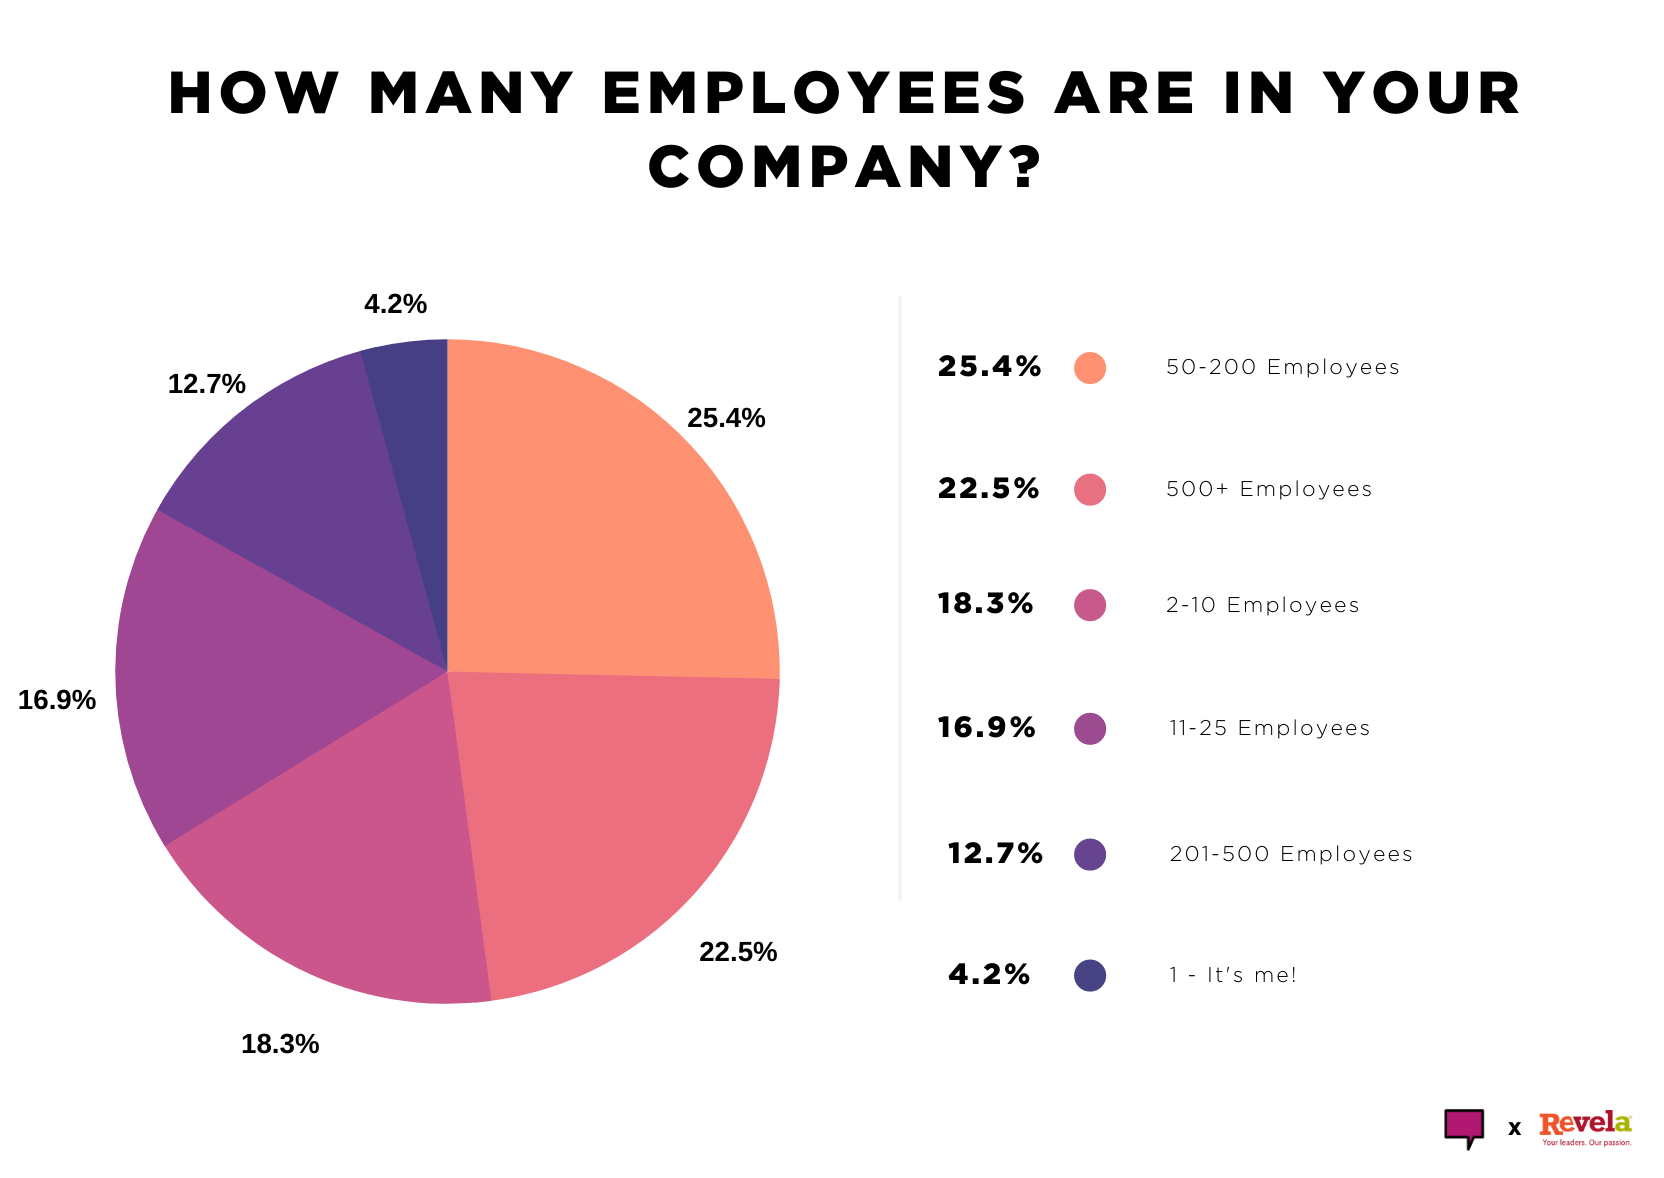 How many employees are in your company?